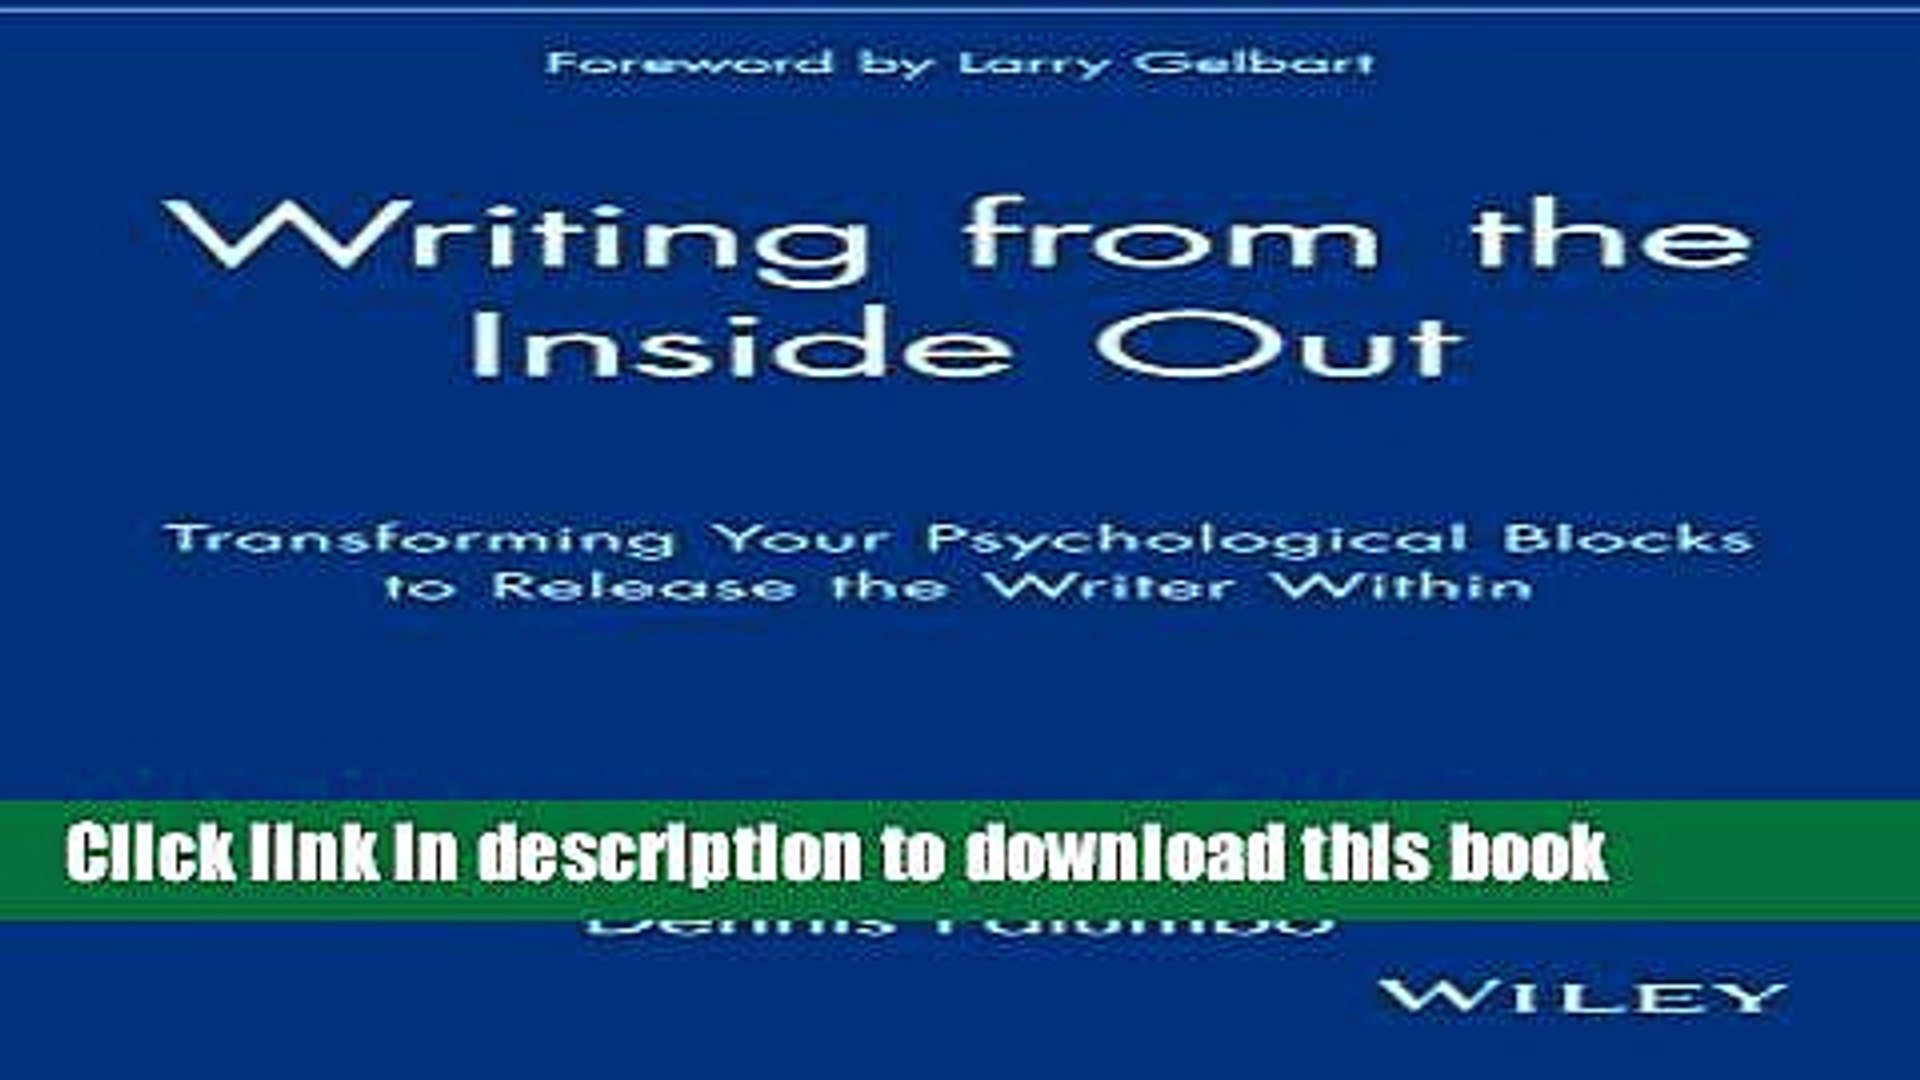 Read Book Writing from the Inside Out: Transforming Your Psychological Blocks to Release the